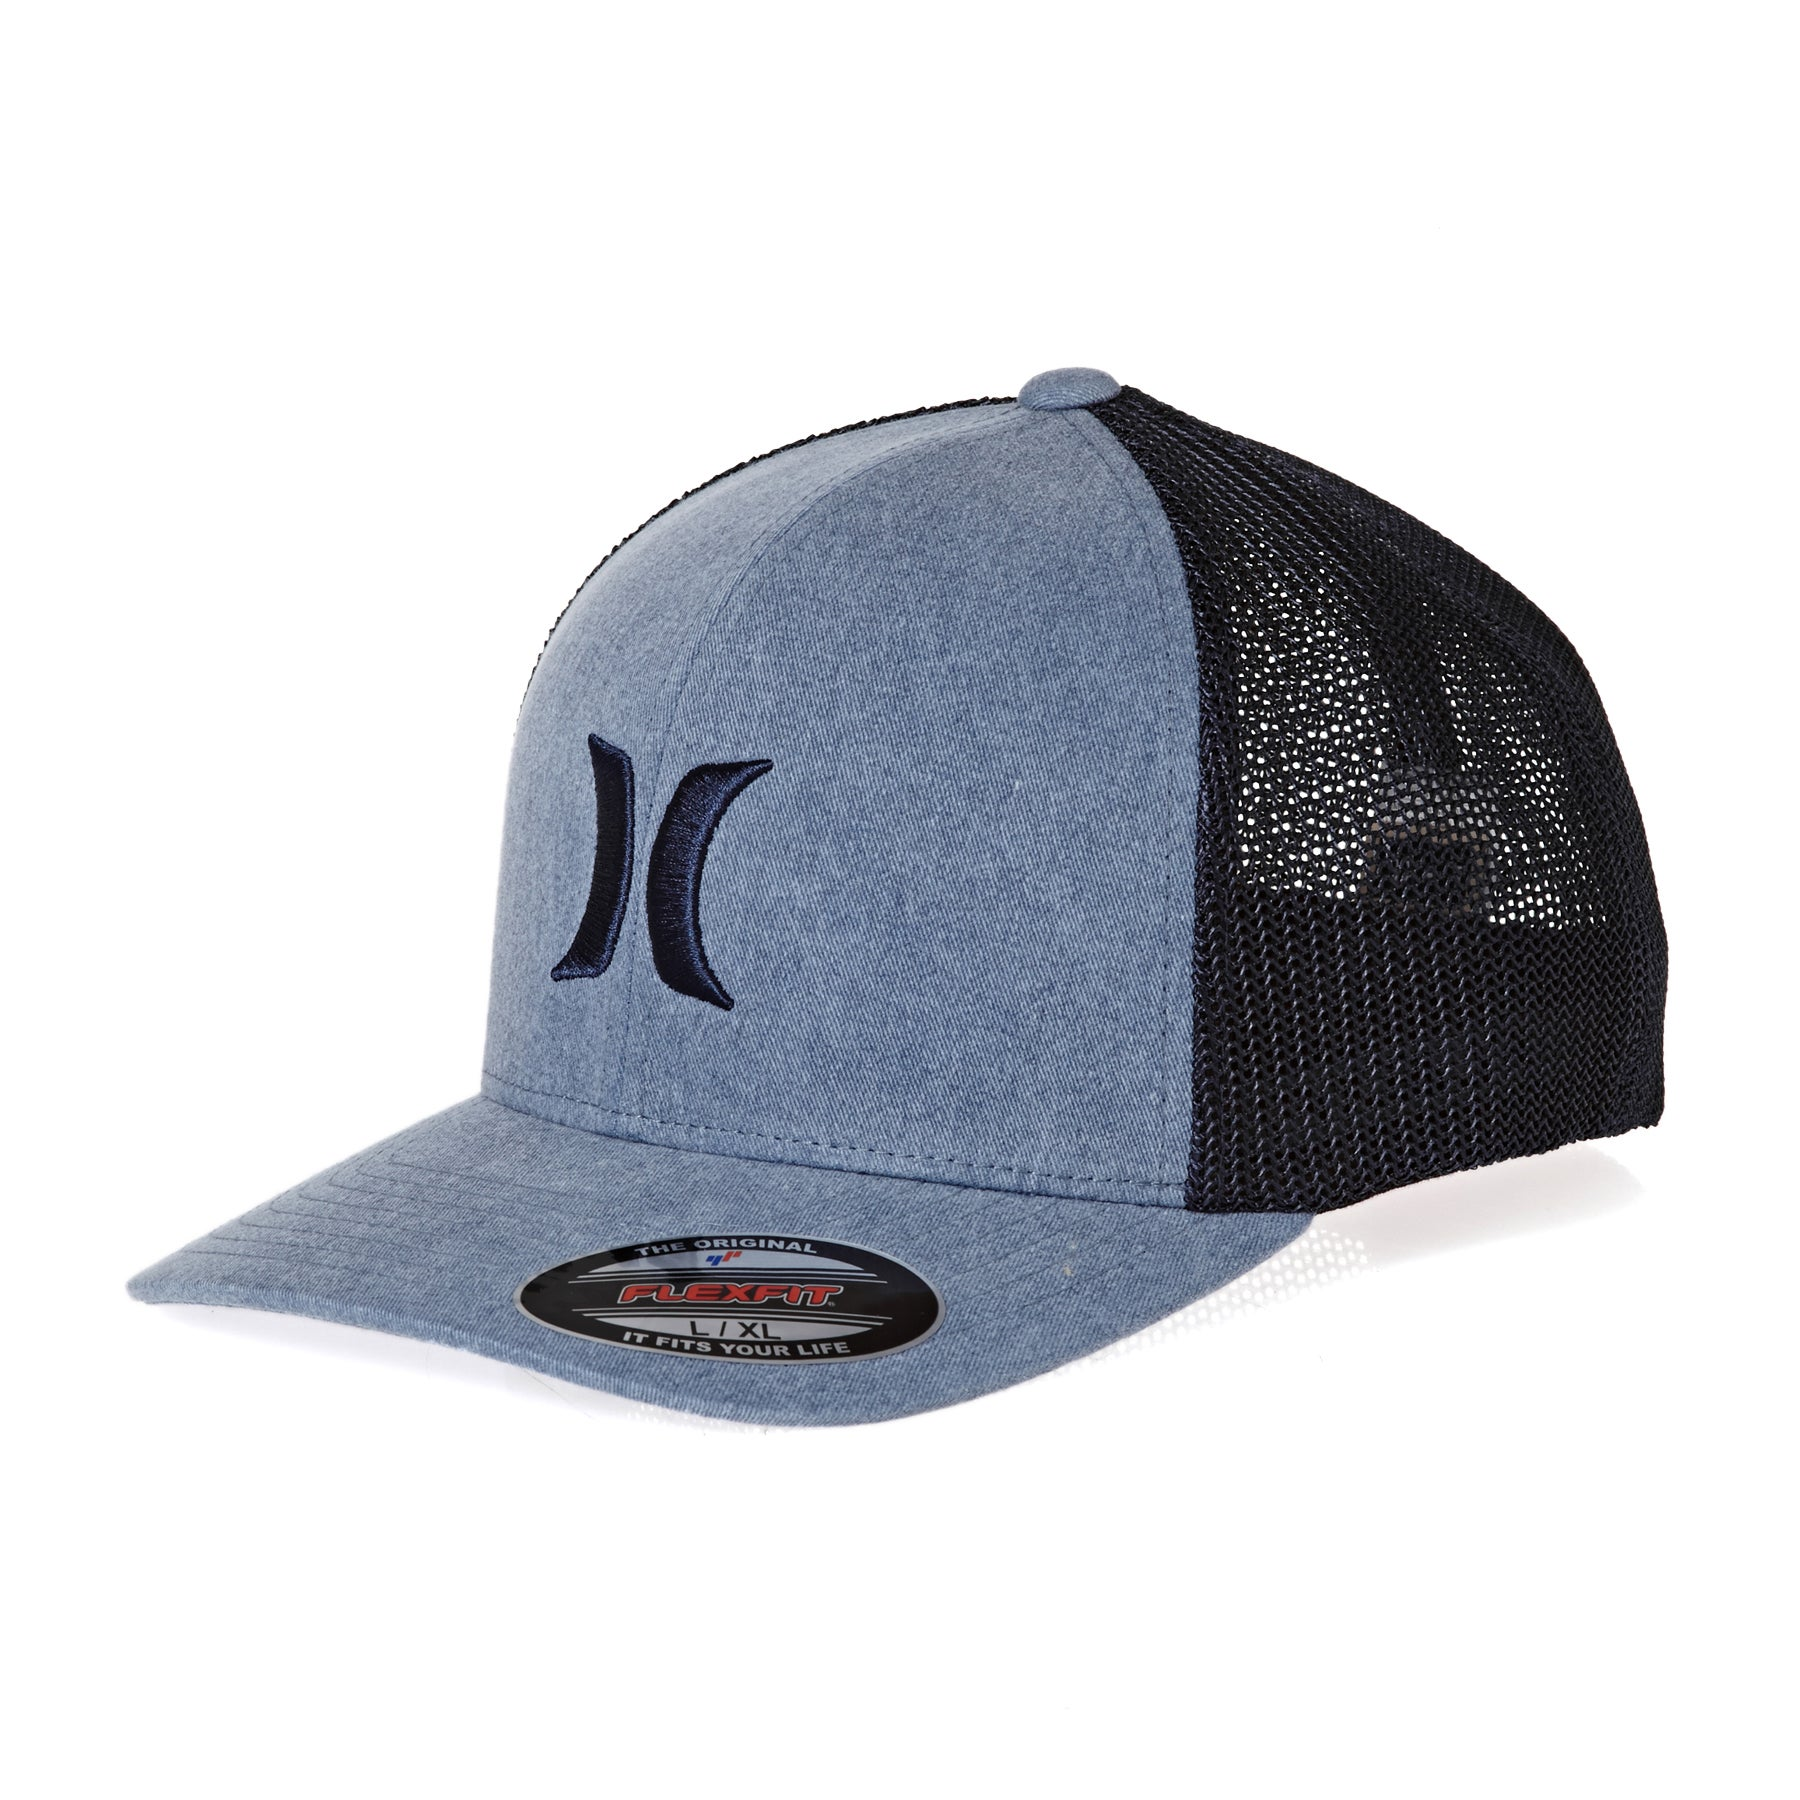 Hurley Icon Textures Cap - Armory Navy